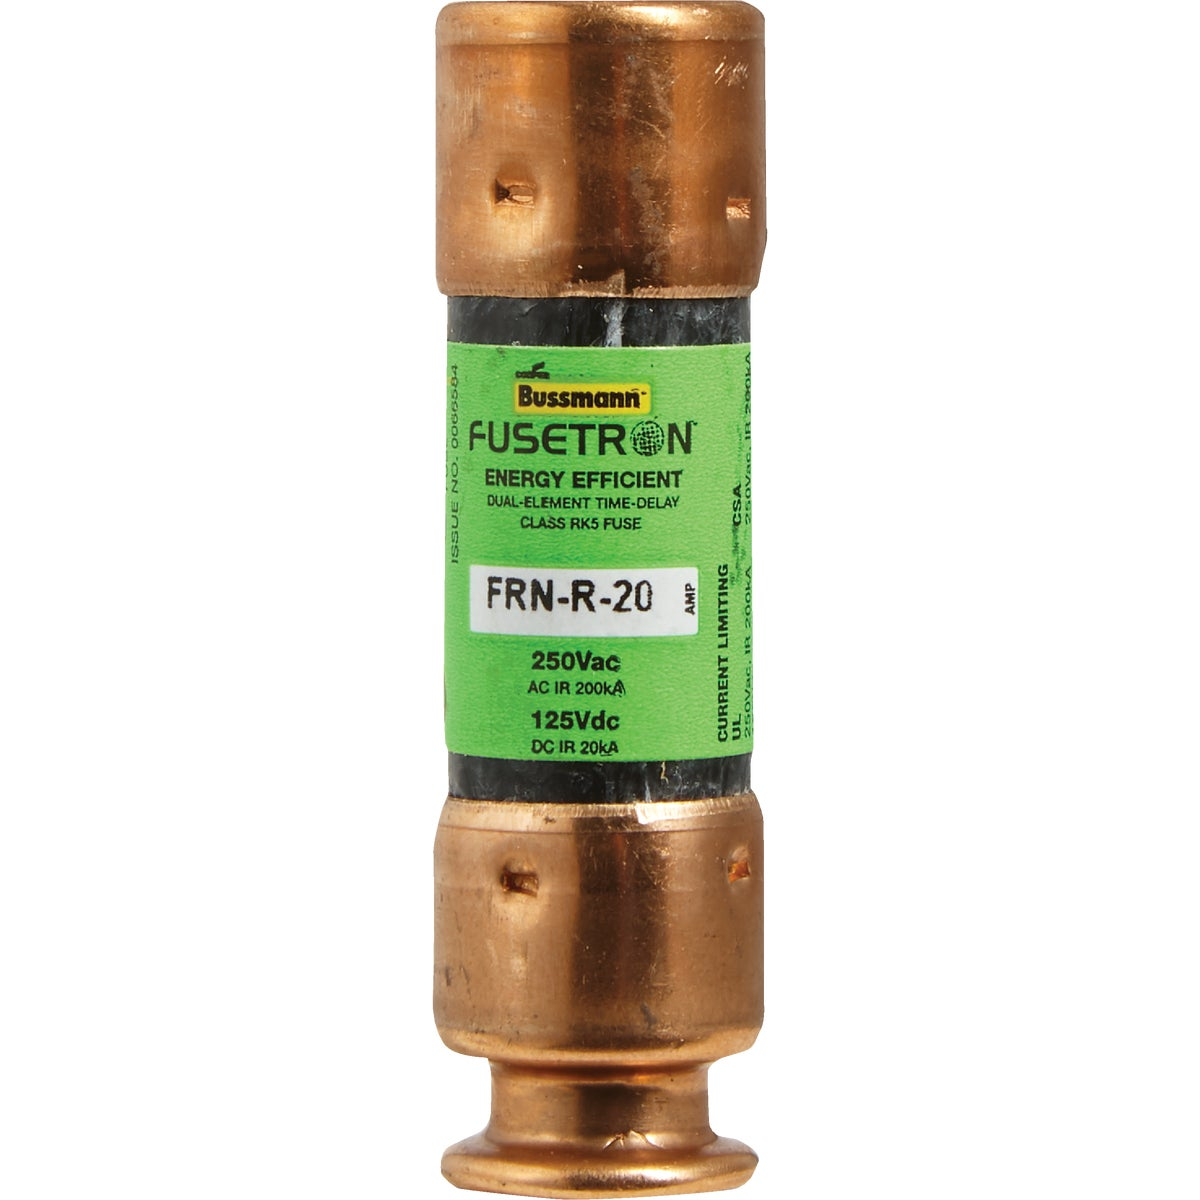 20A CARTRIDGE FUSE - FRN-R-20 by Bussmann Cooper